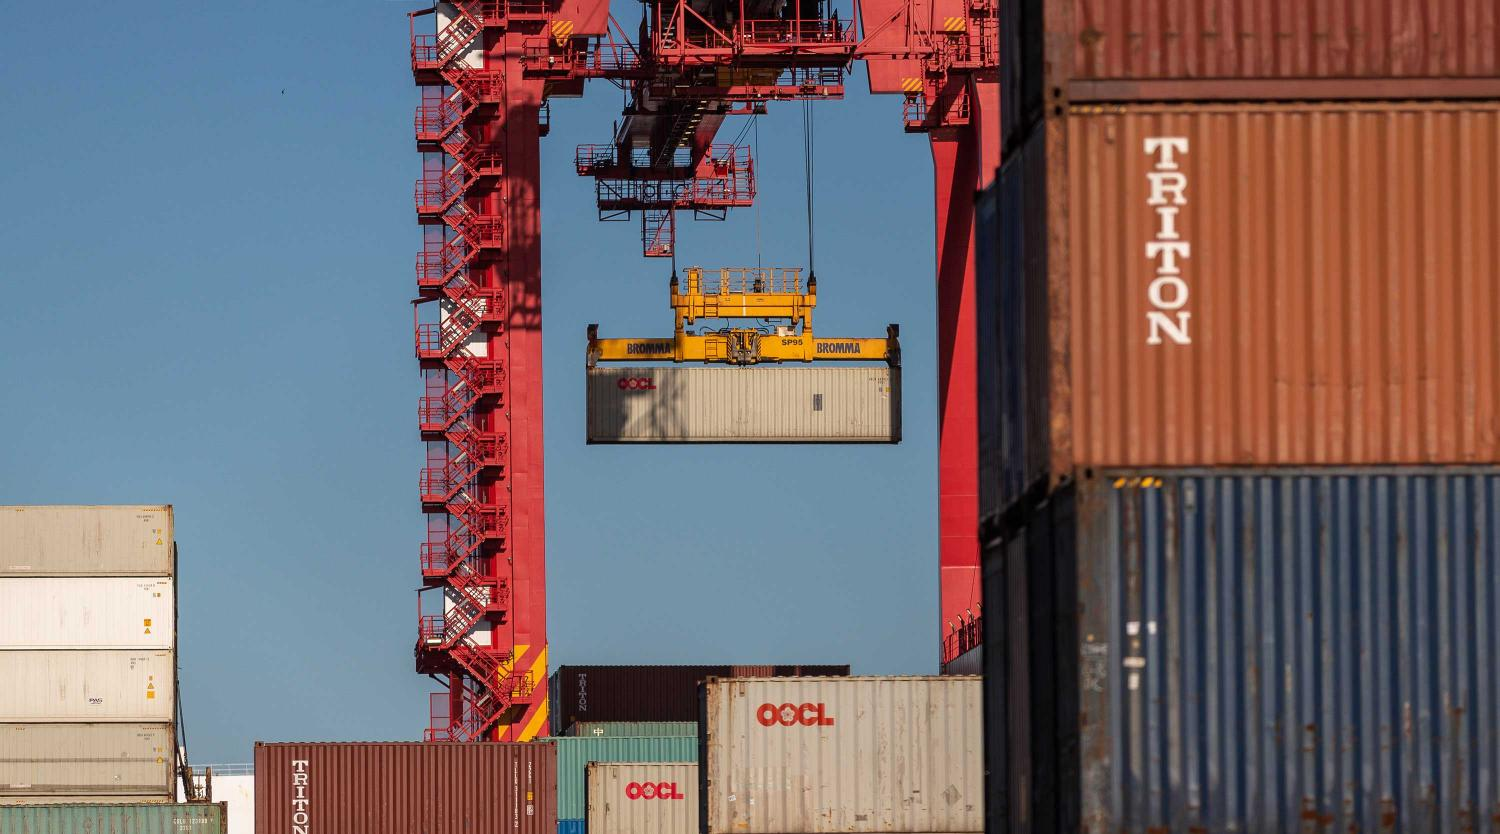 Shipping containers are seen being moved, Monday, August 16, 2021.